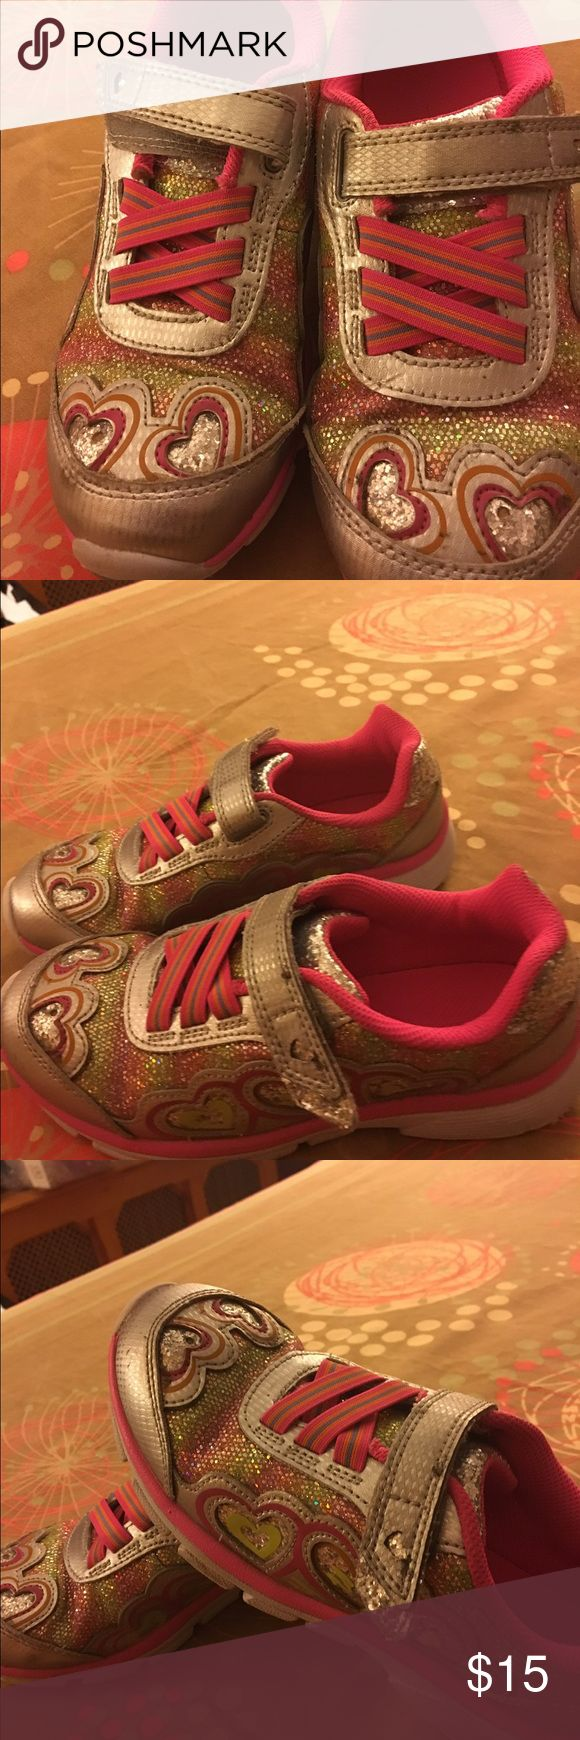 Pink Sneakers for girls. Only used once Sneakers with lights and heart designs Stride Rite Shoes Sneakers